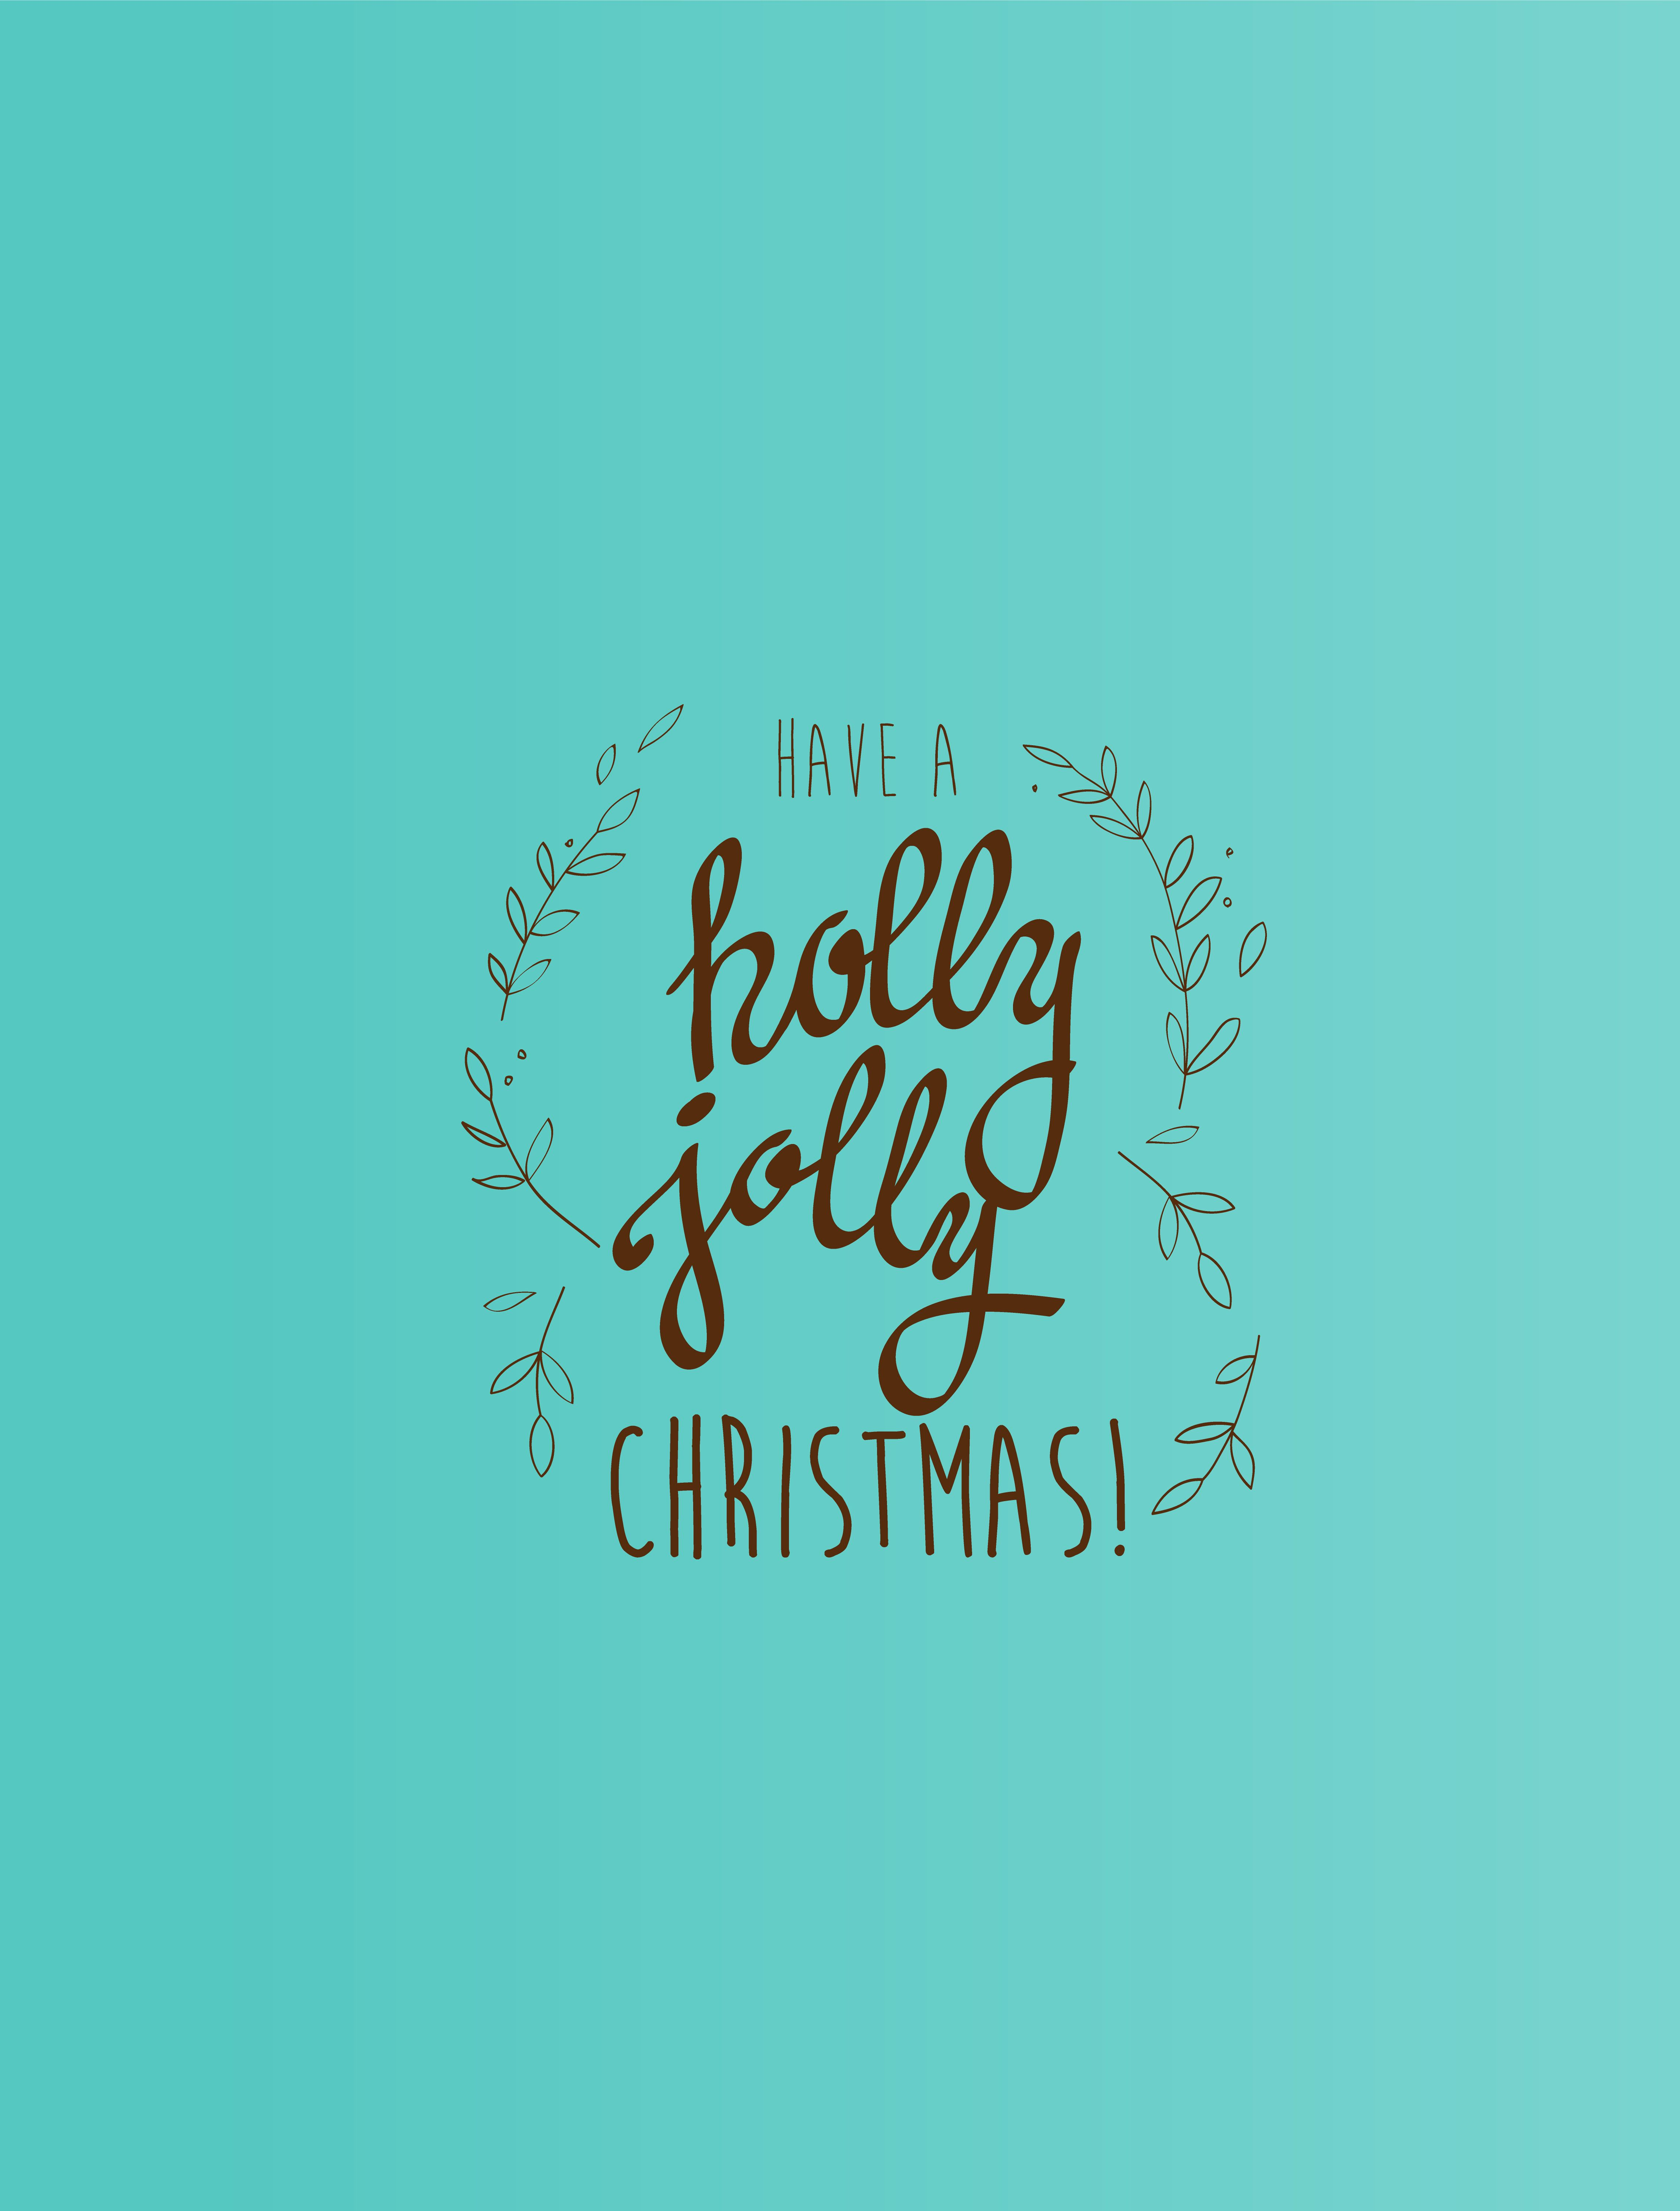 Have a holly jolly Christmas vector illustration on green